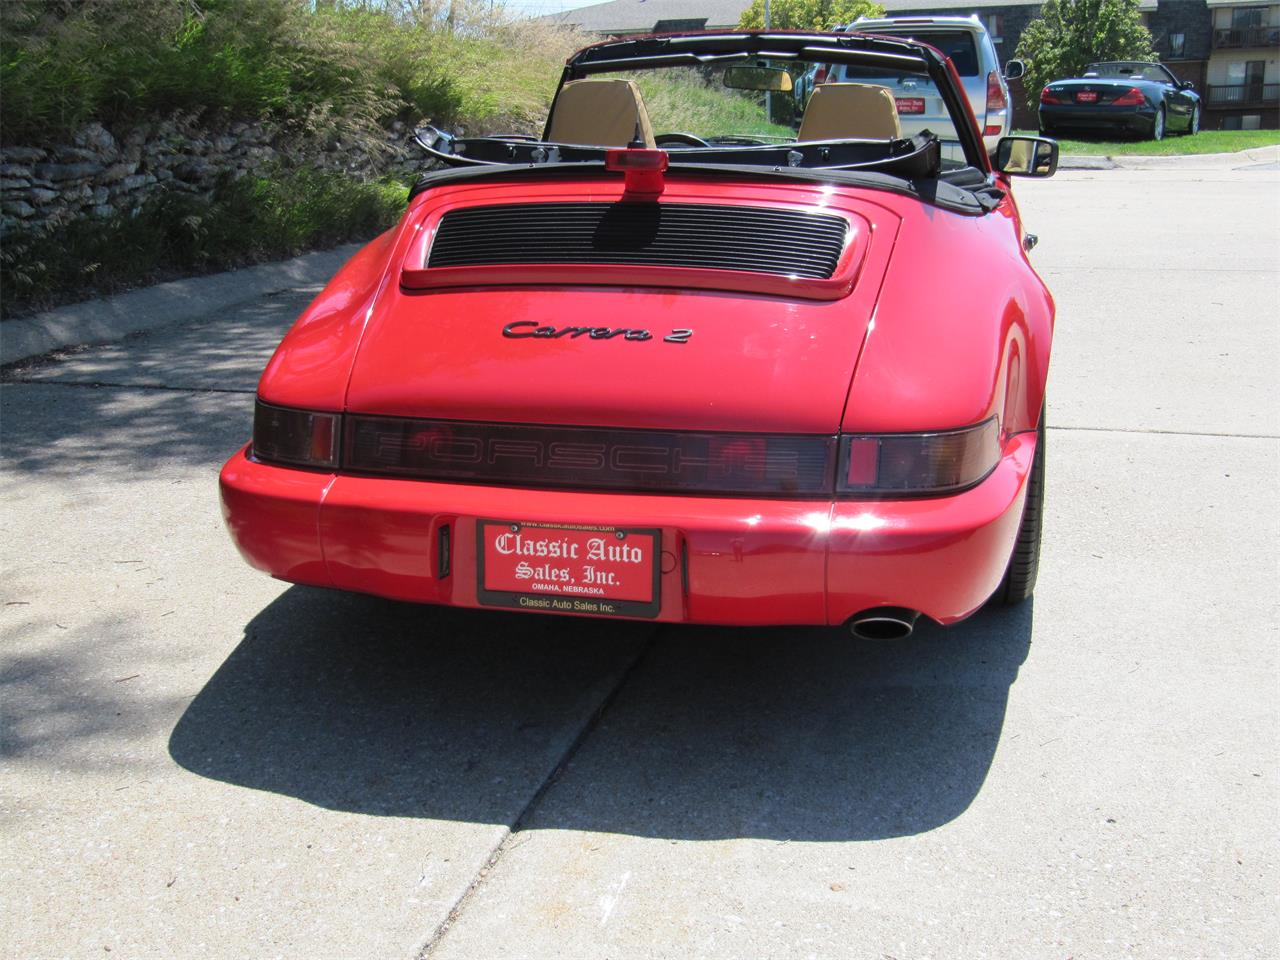 1991 Porsche 911 Carrera (CC-1247186) for sale in Omaha, Nebraska